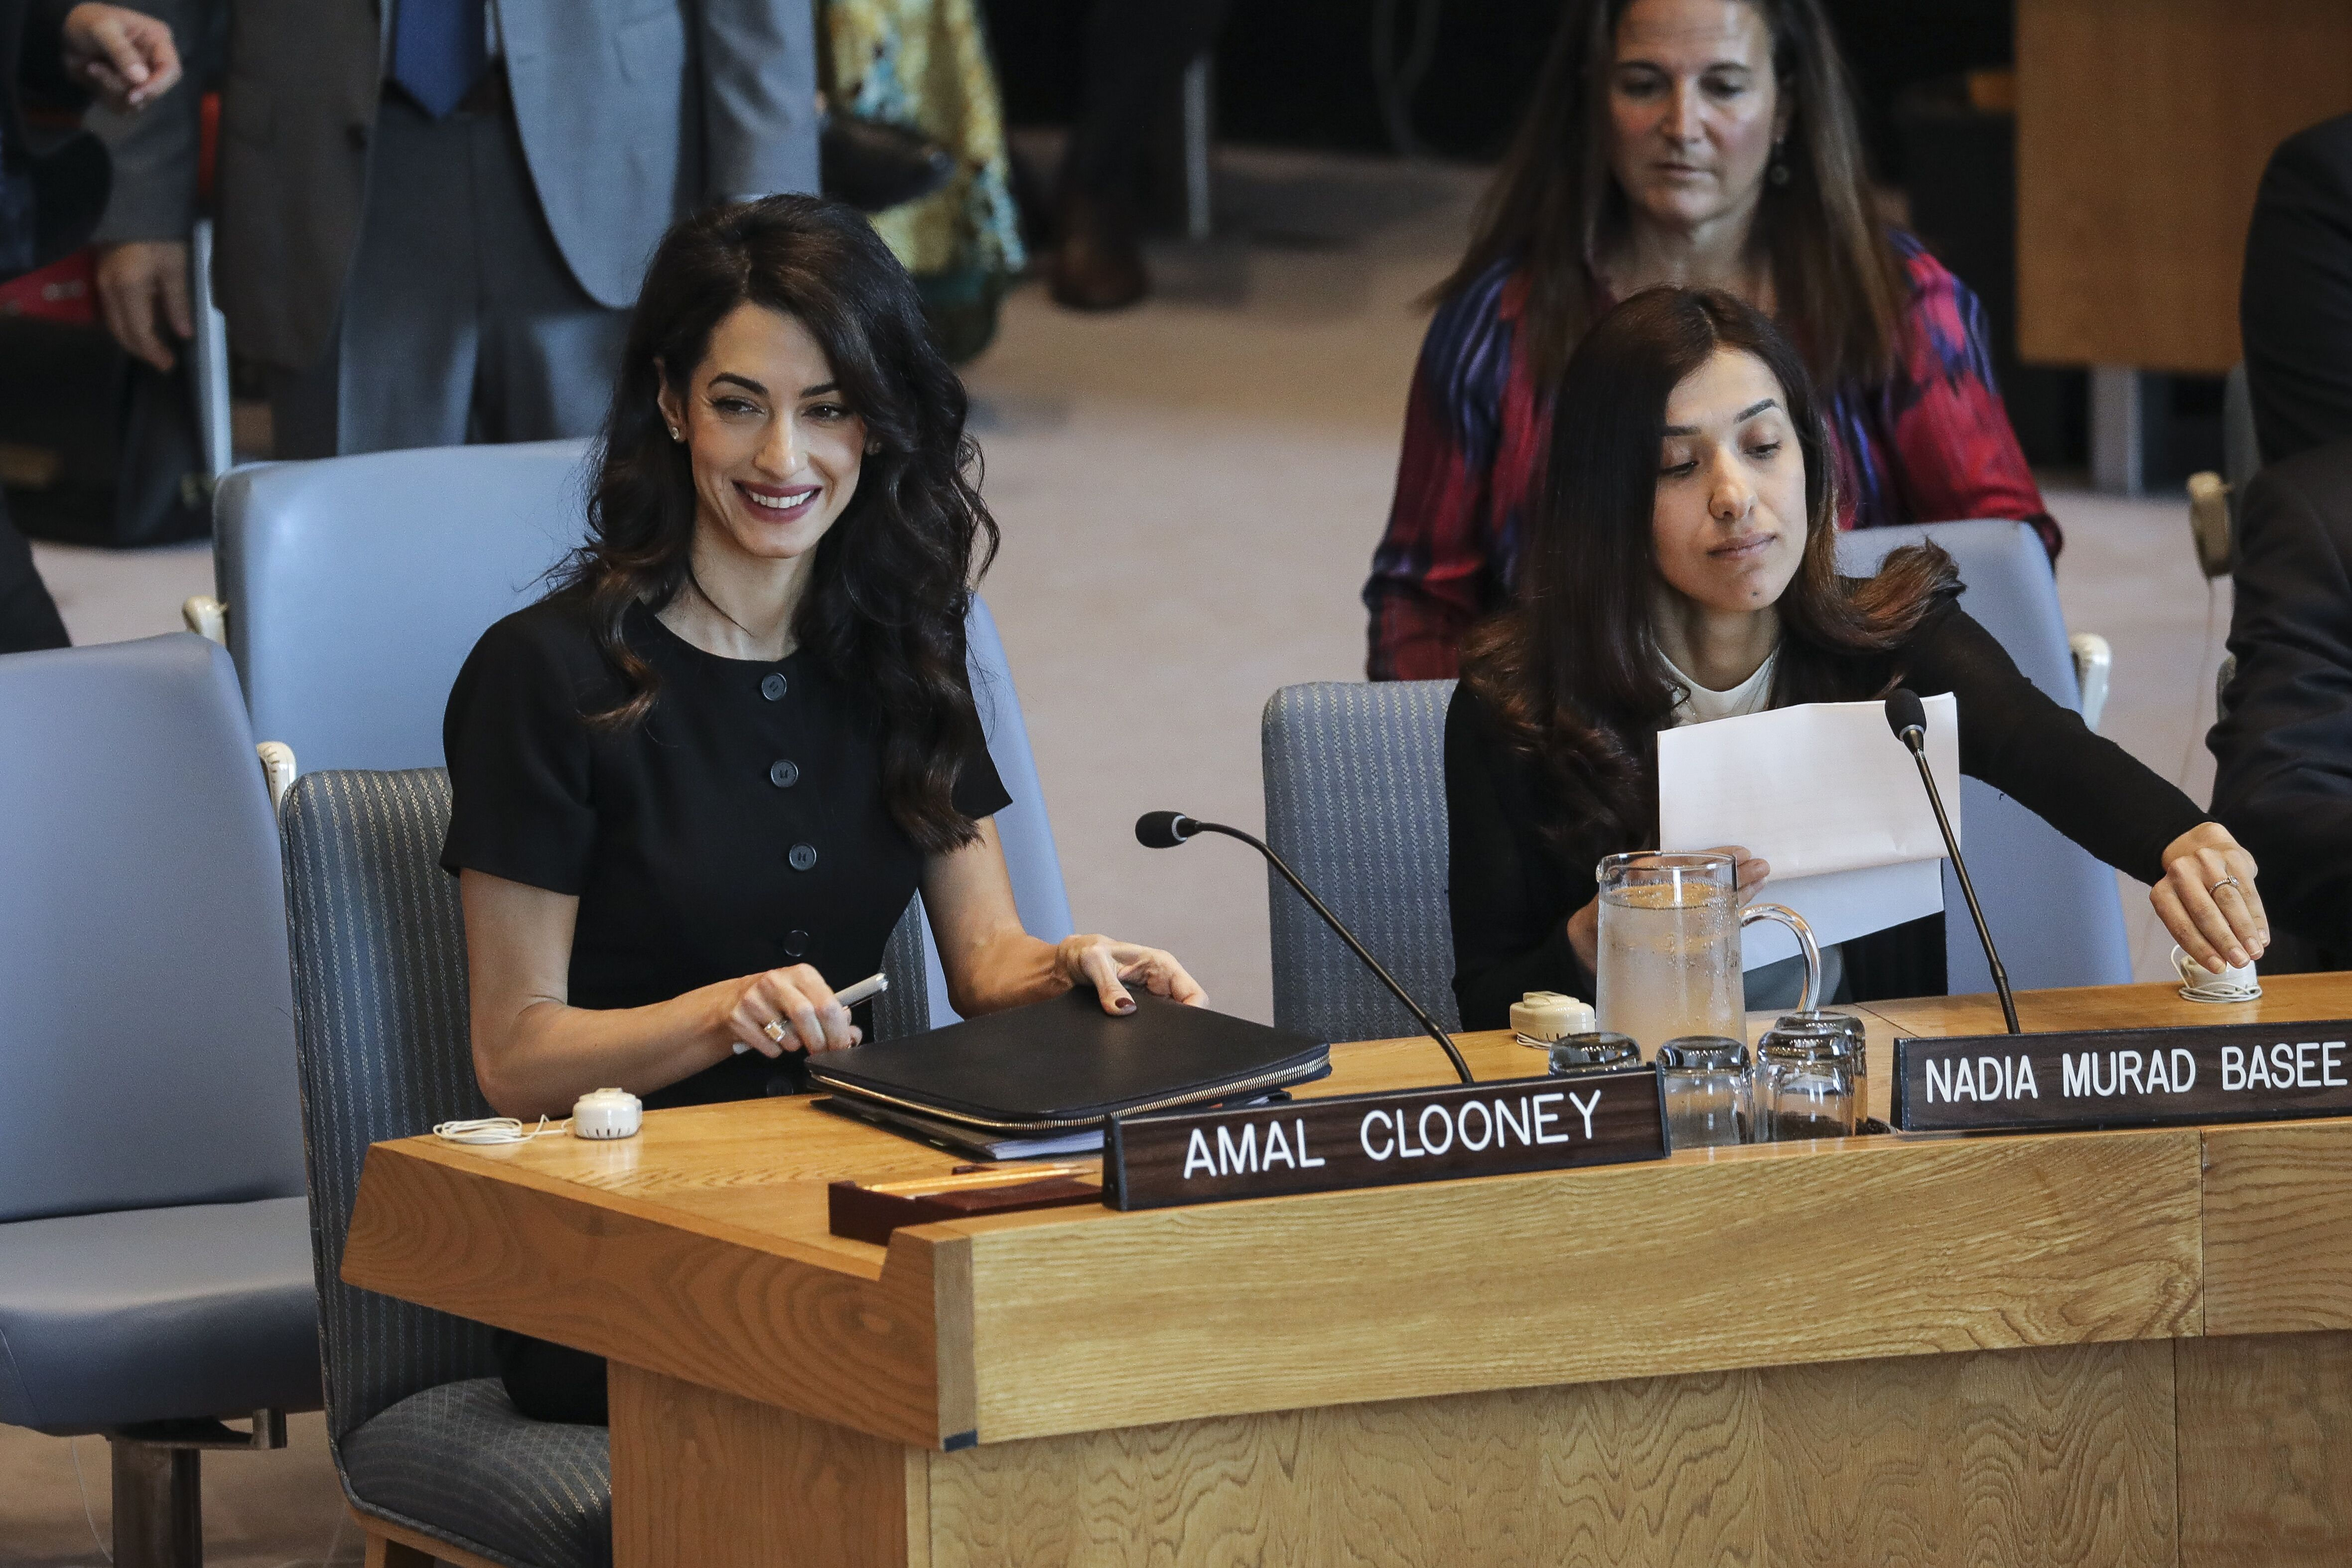 Amal Clooney and Iraqi human rights activist Nadia Murad Basee Taha attend a United Nations Security Council meeting at U.N. headquarters in 2019 in New York | Source: Getty Images